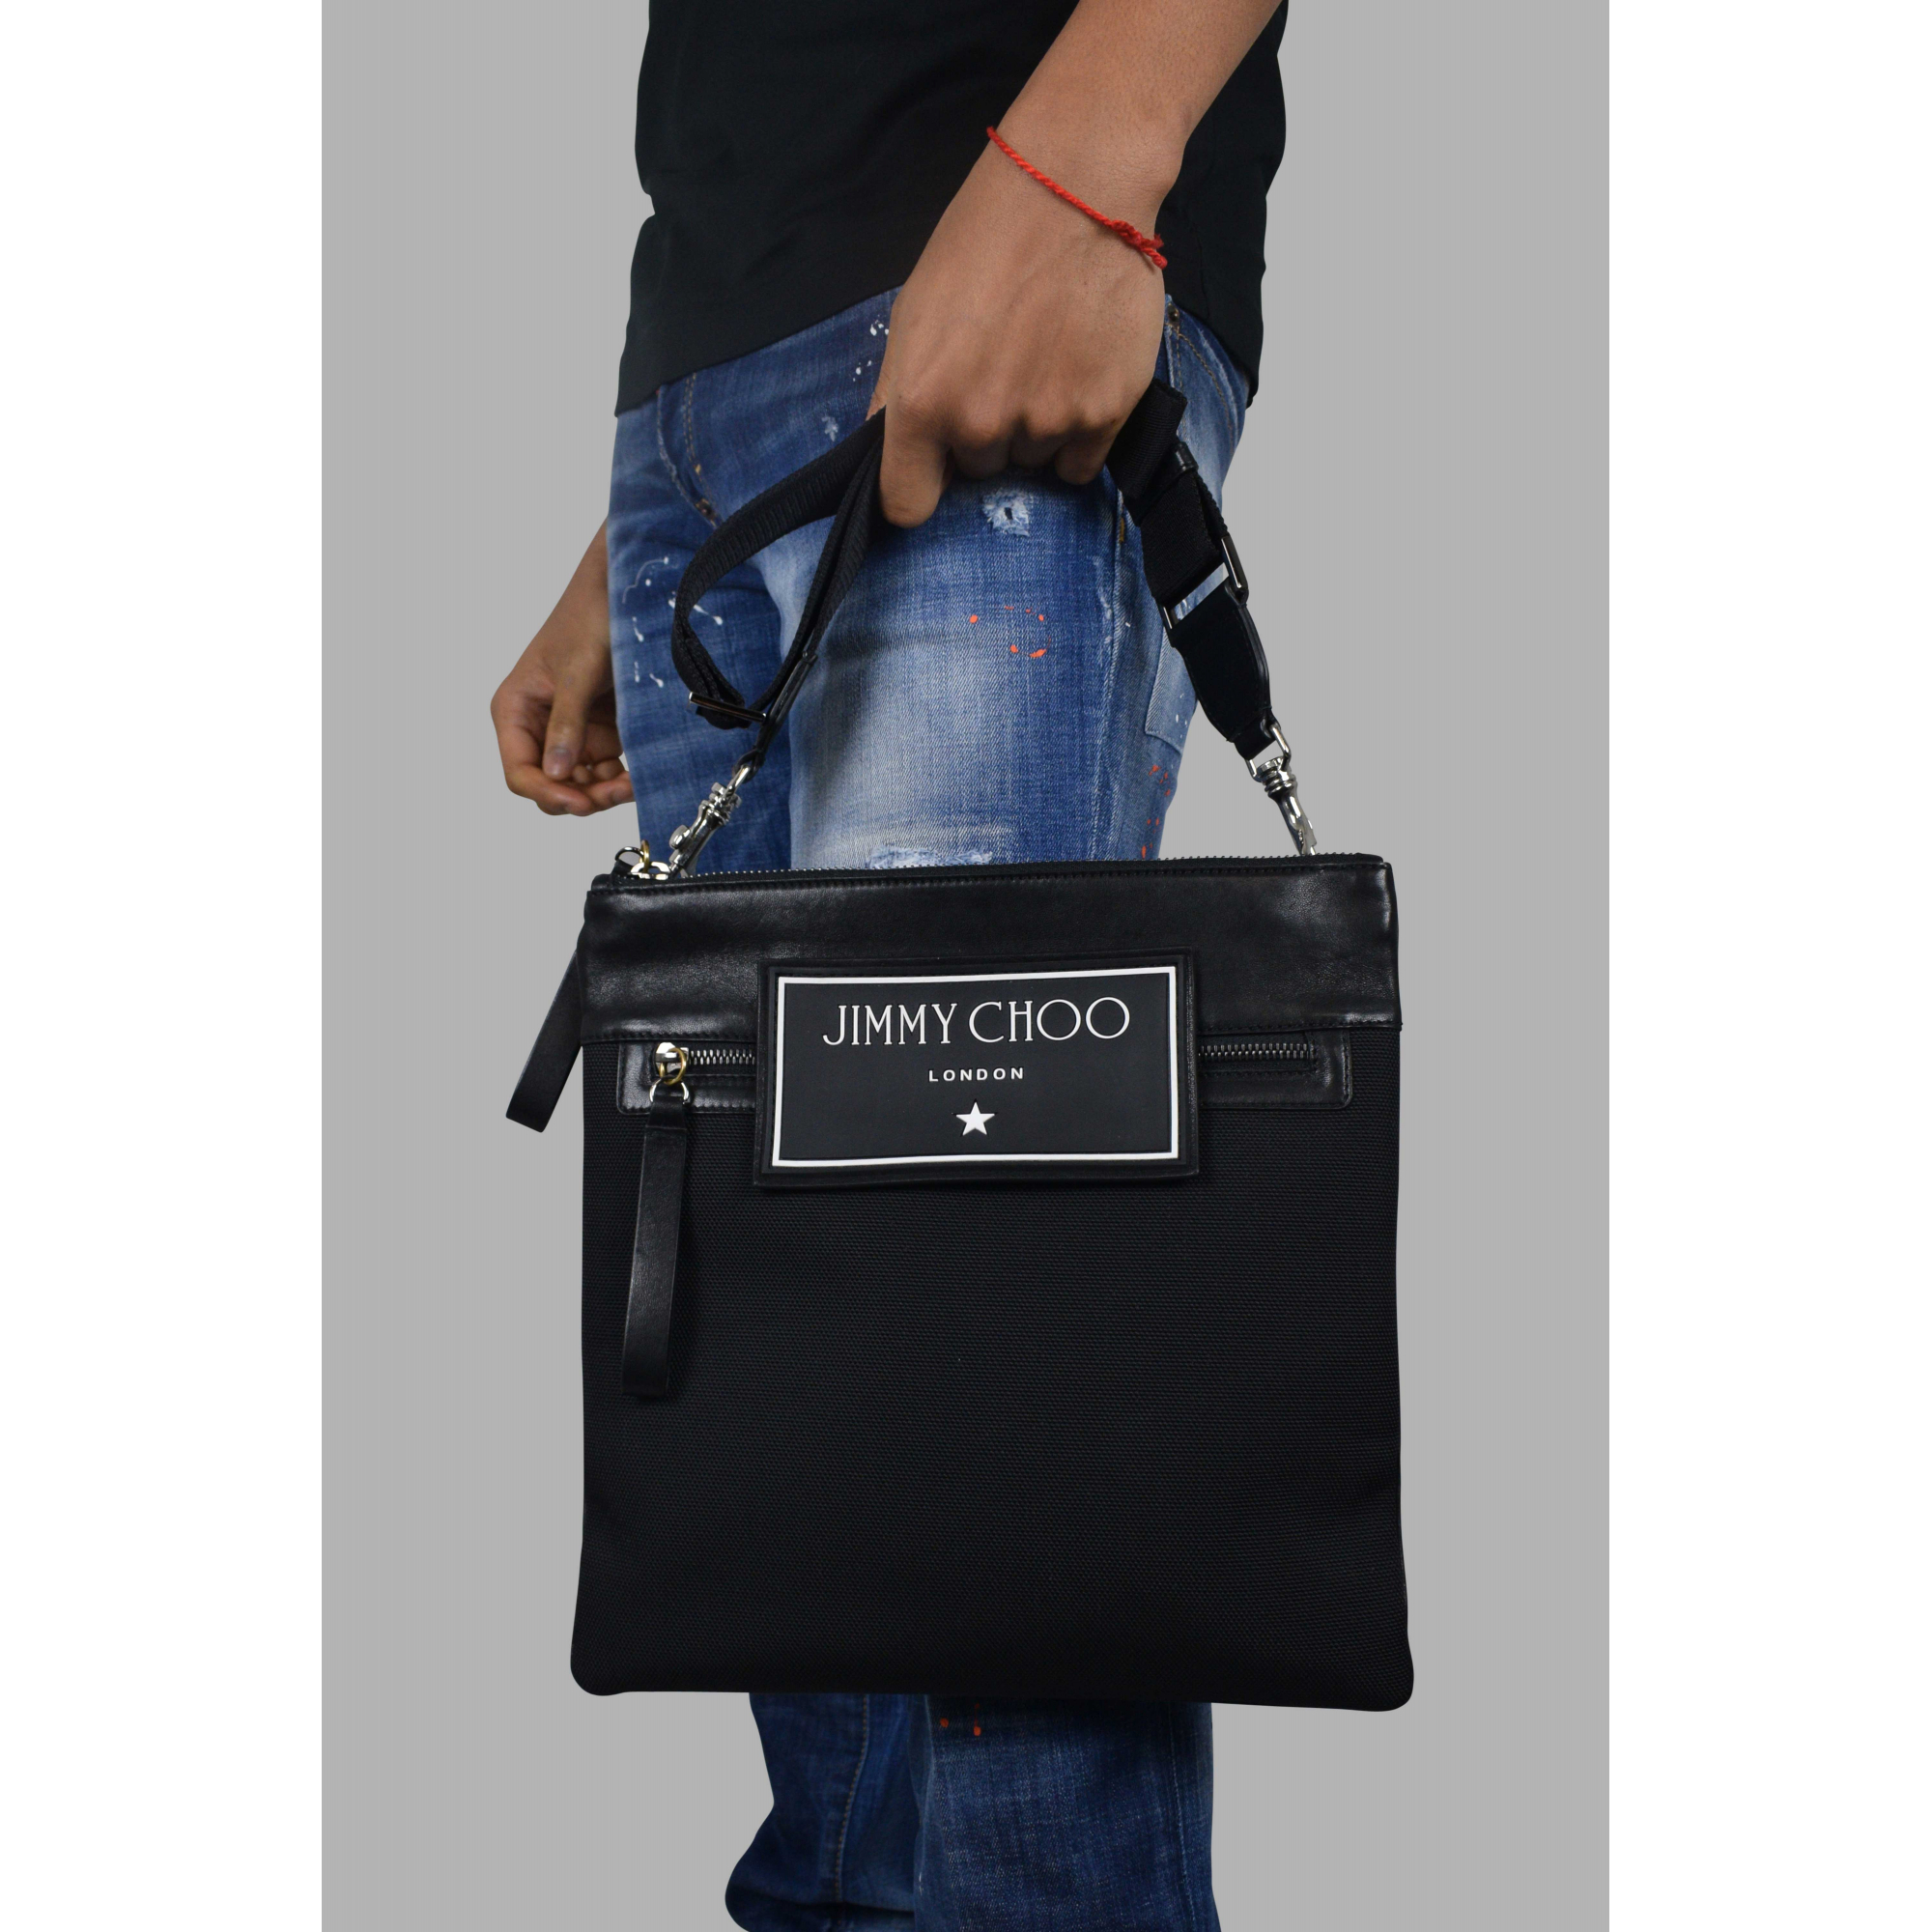 Jimmy Choo messenger bag in black leather and fabric.